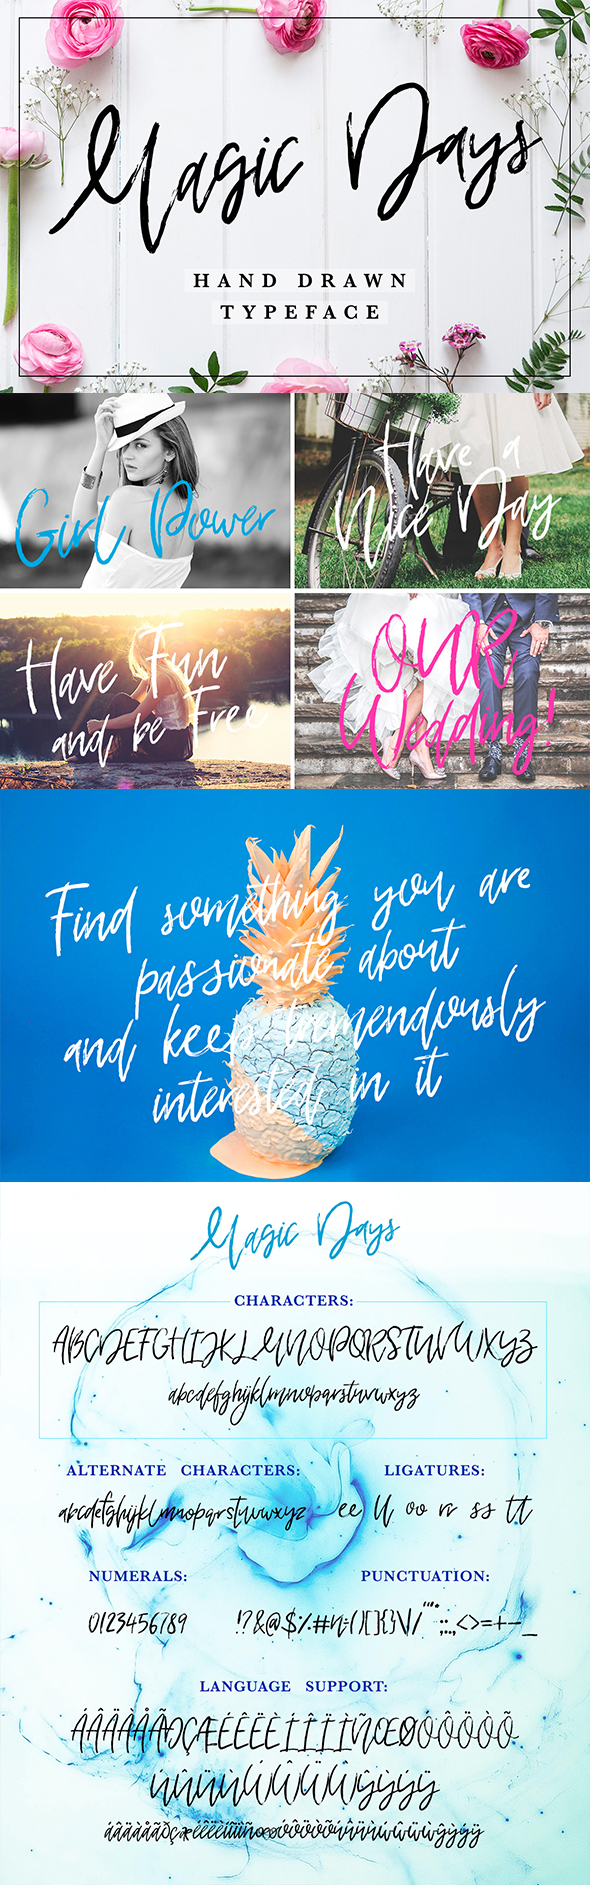 GraphicRiver Magic Days Hand Drawn Font 21126986